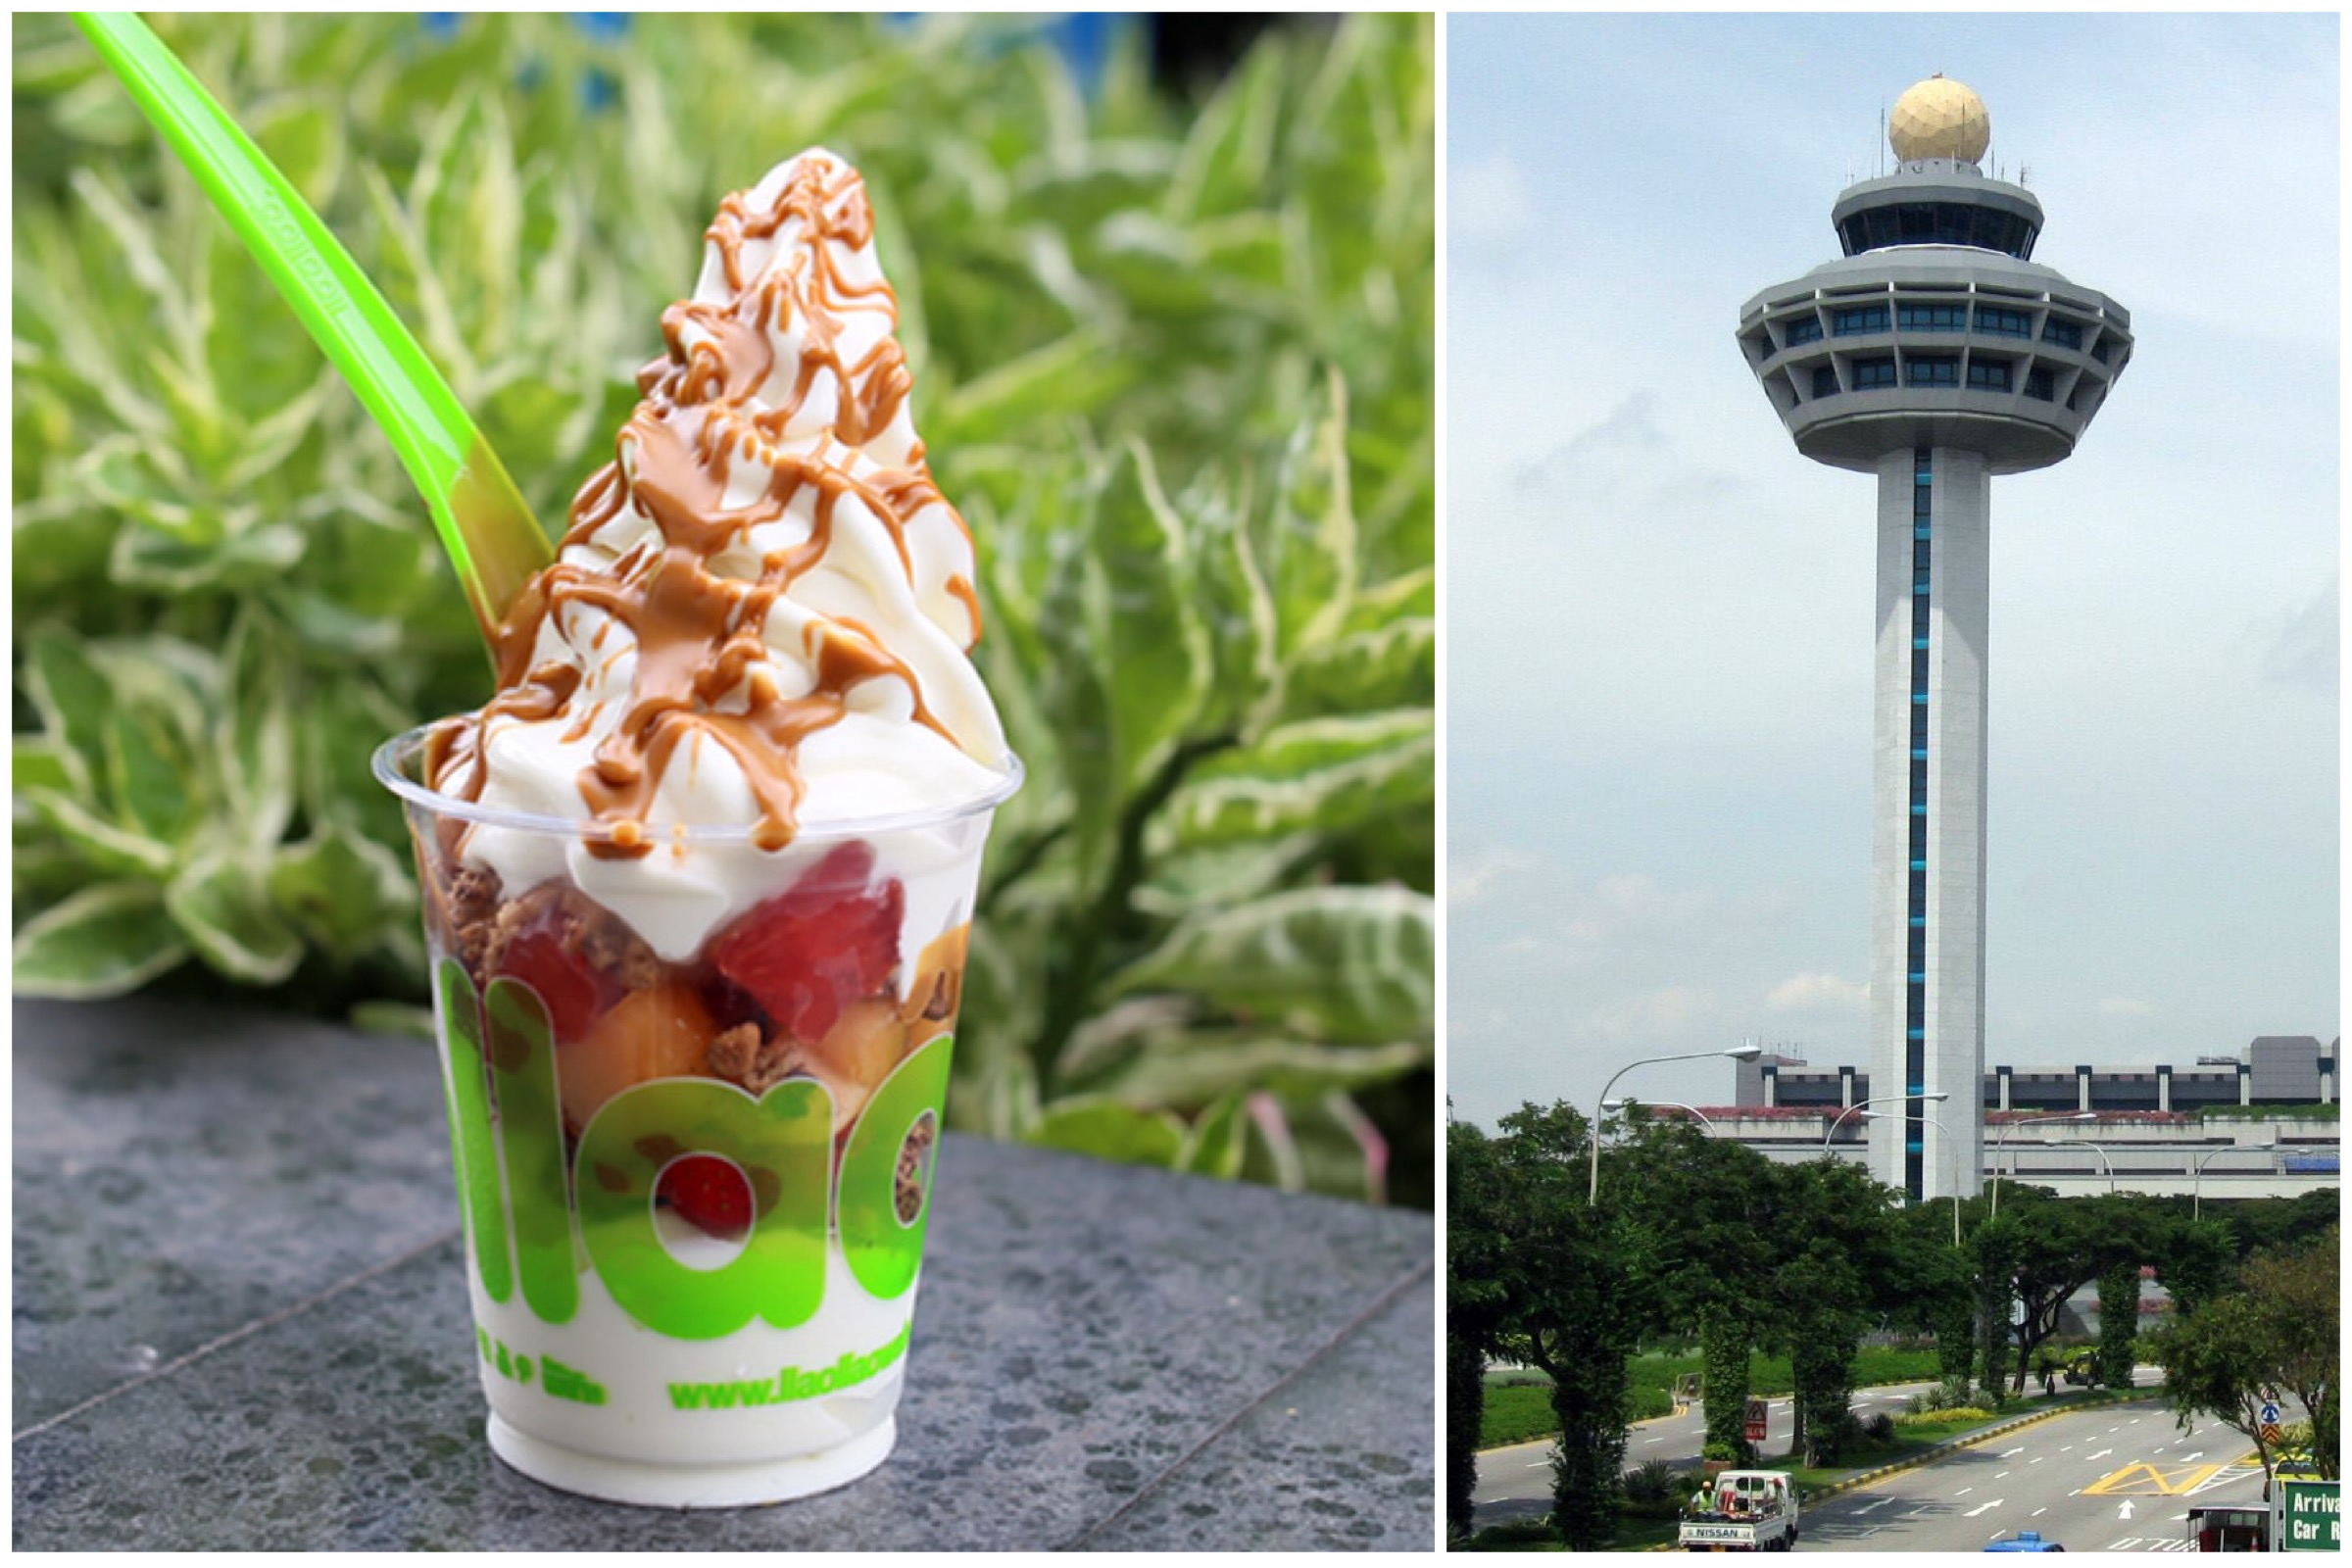 Llao Llao - Popular Frozen Yogurt Brand Opening At Changi Airport T2, 16 Jun (Sat)